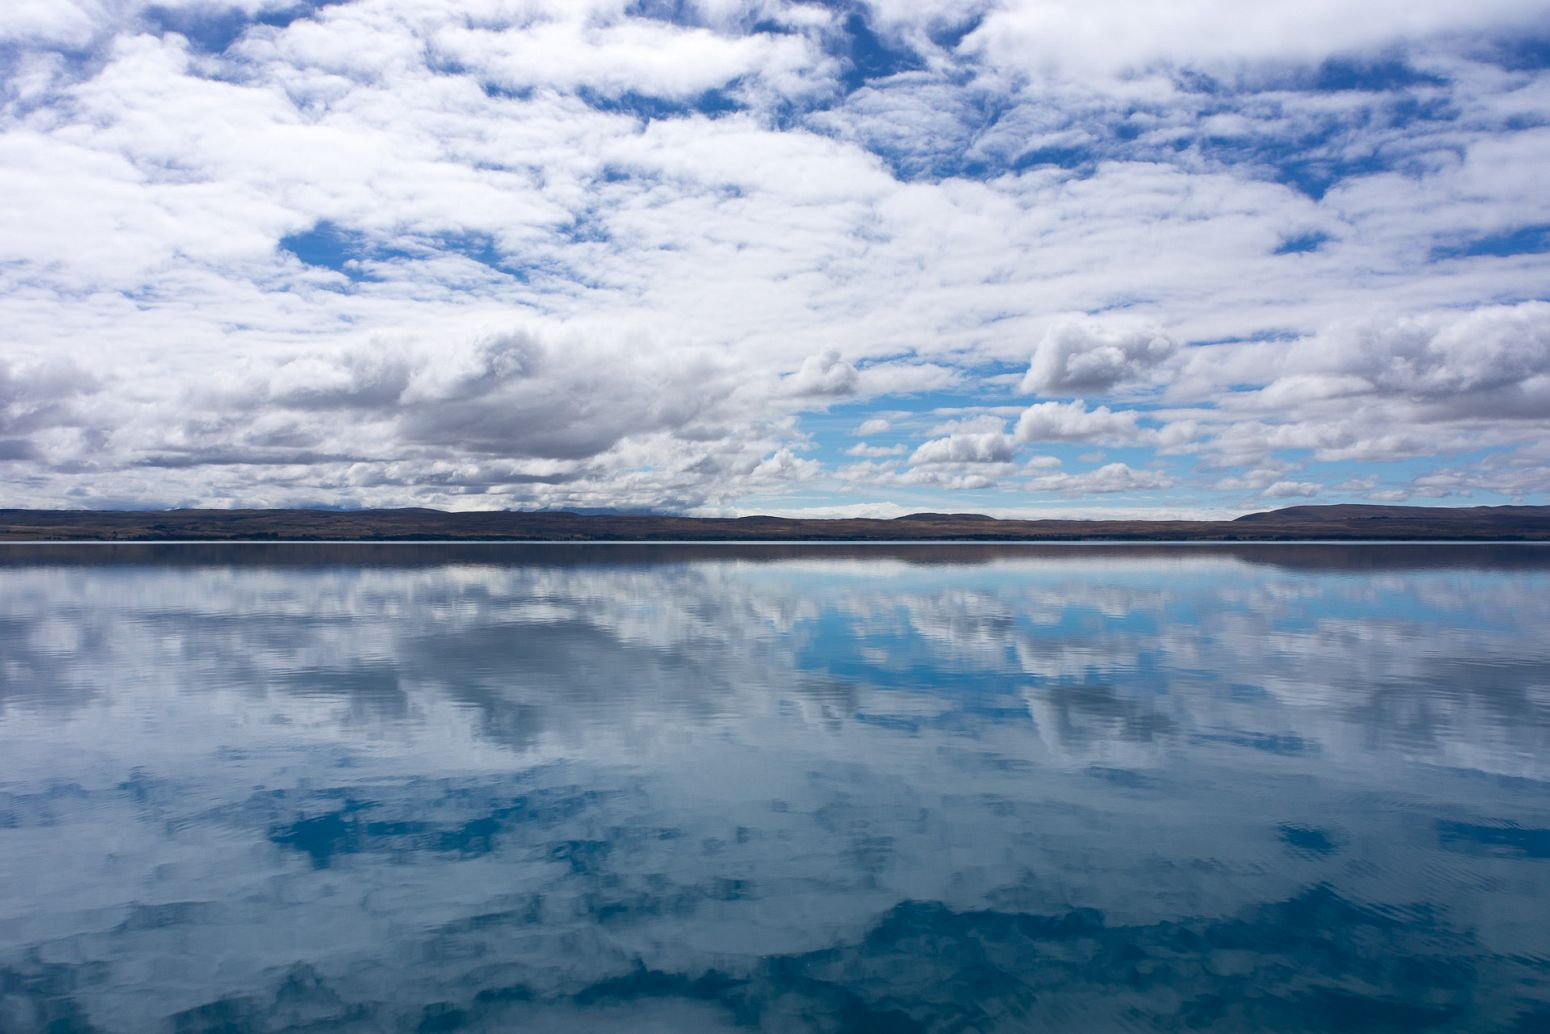 Lake Pukaki reflections, New Zealand